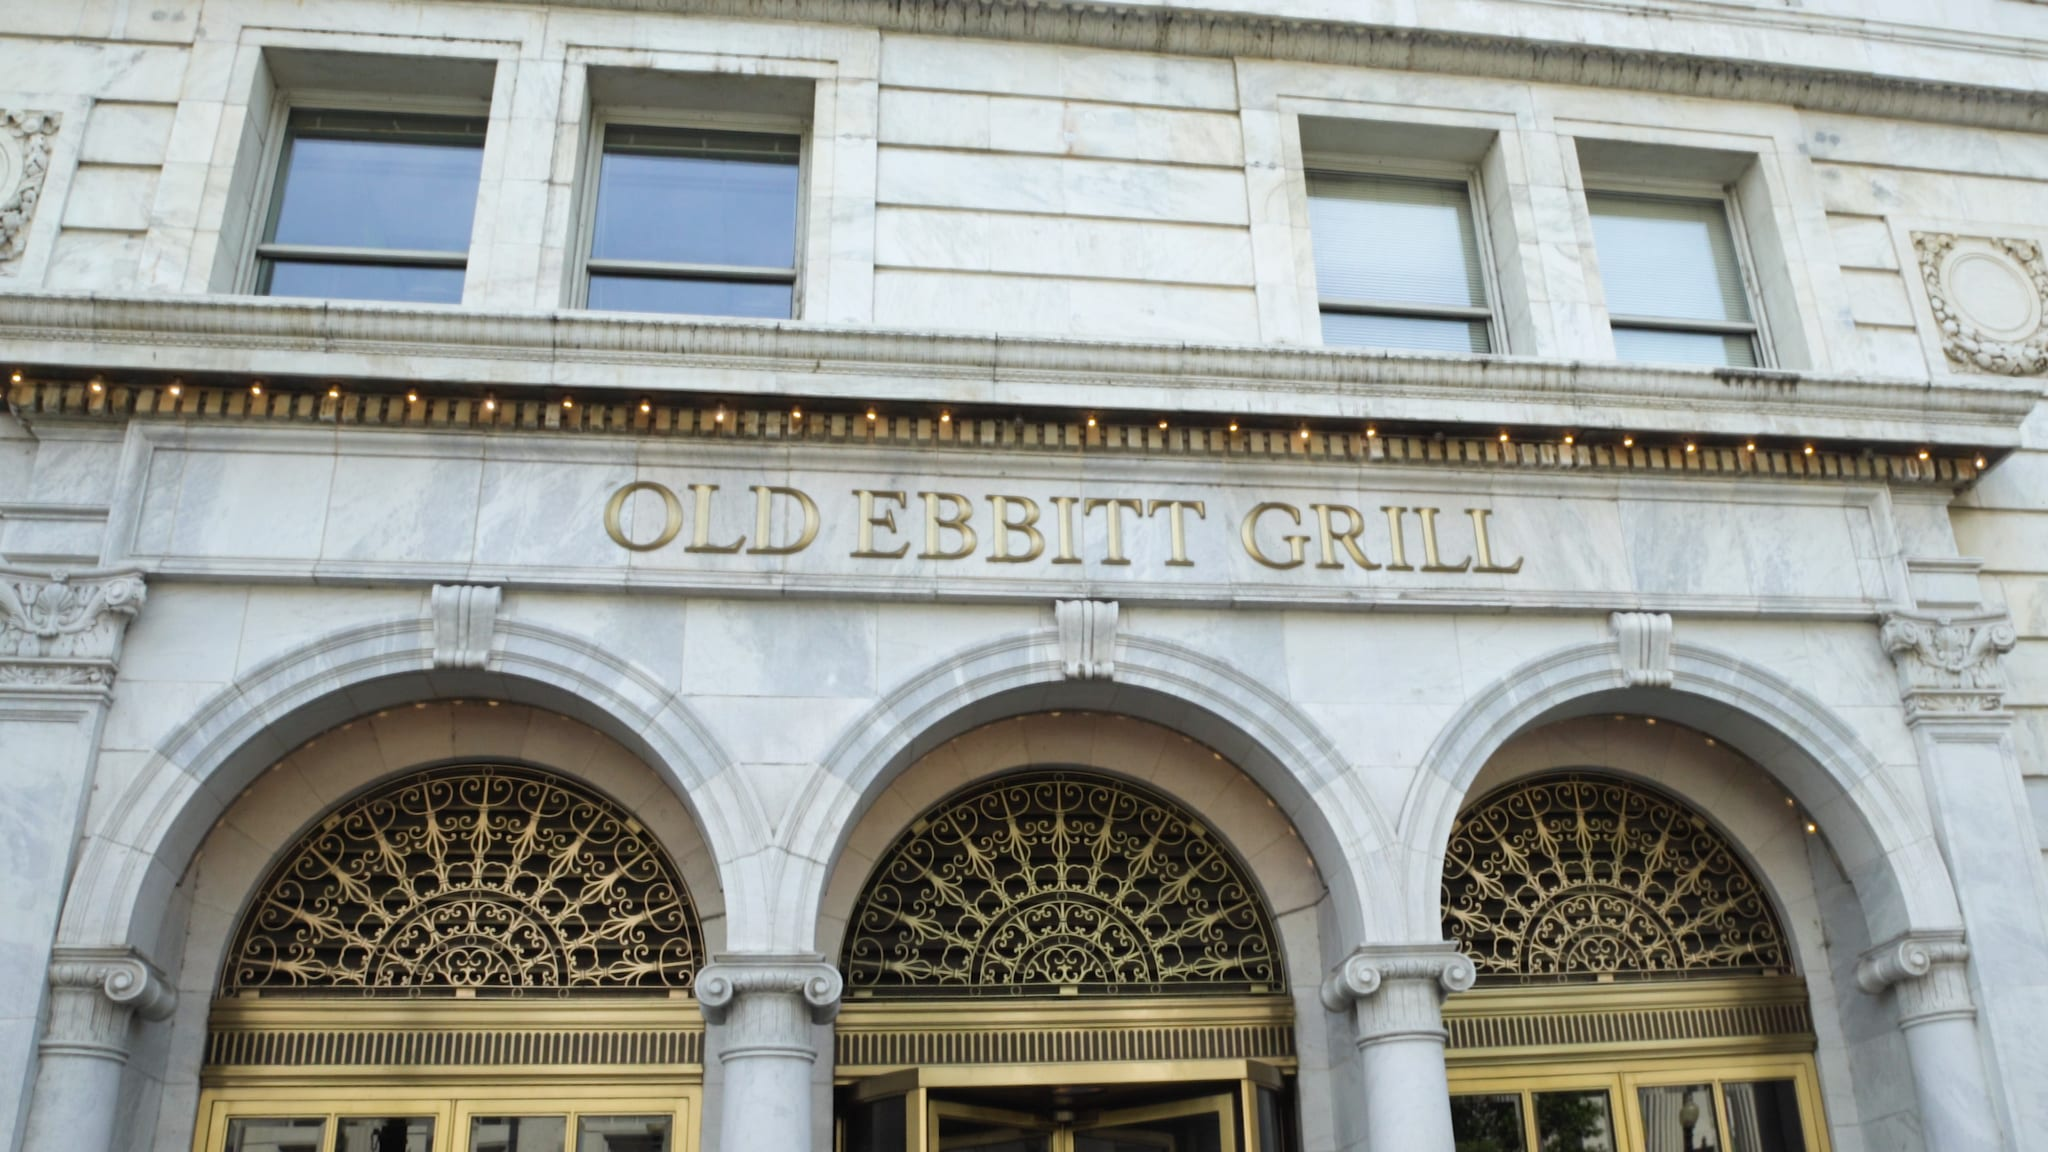 Old Ebbit Grill building entrance with gold lettering and doors.